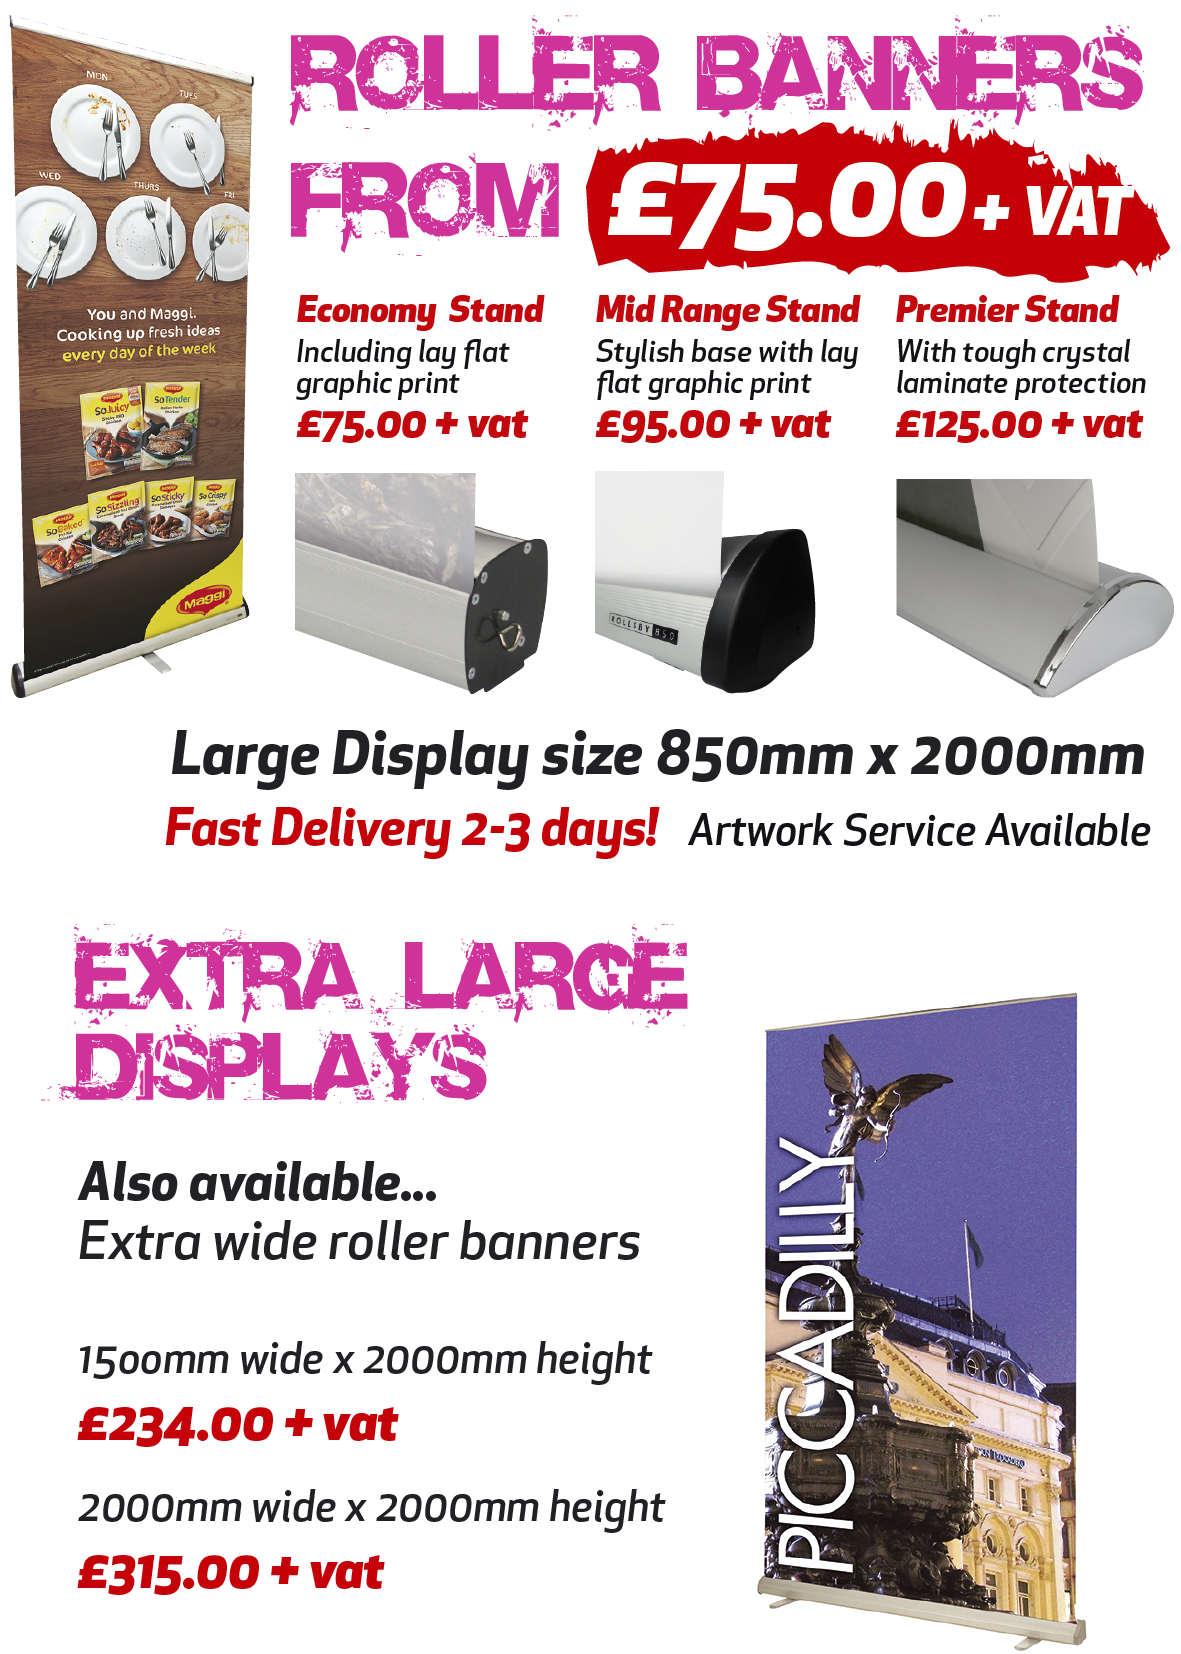 roller banner prices Jan 2015 EDIT FILE V2-01